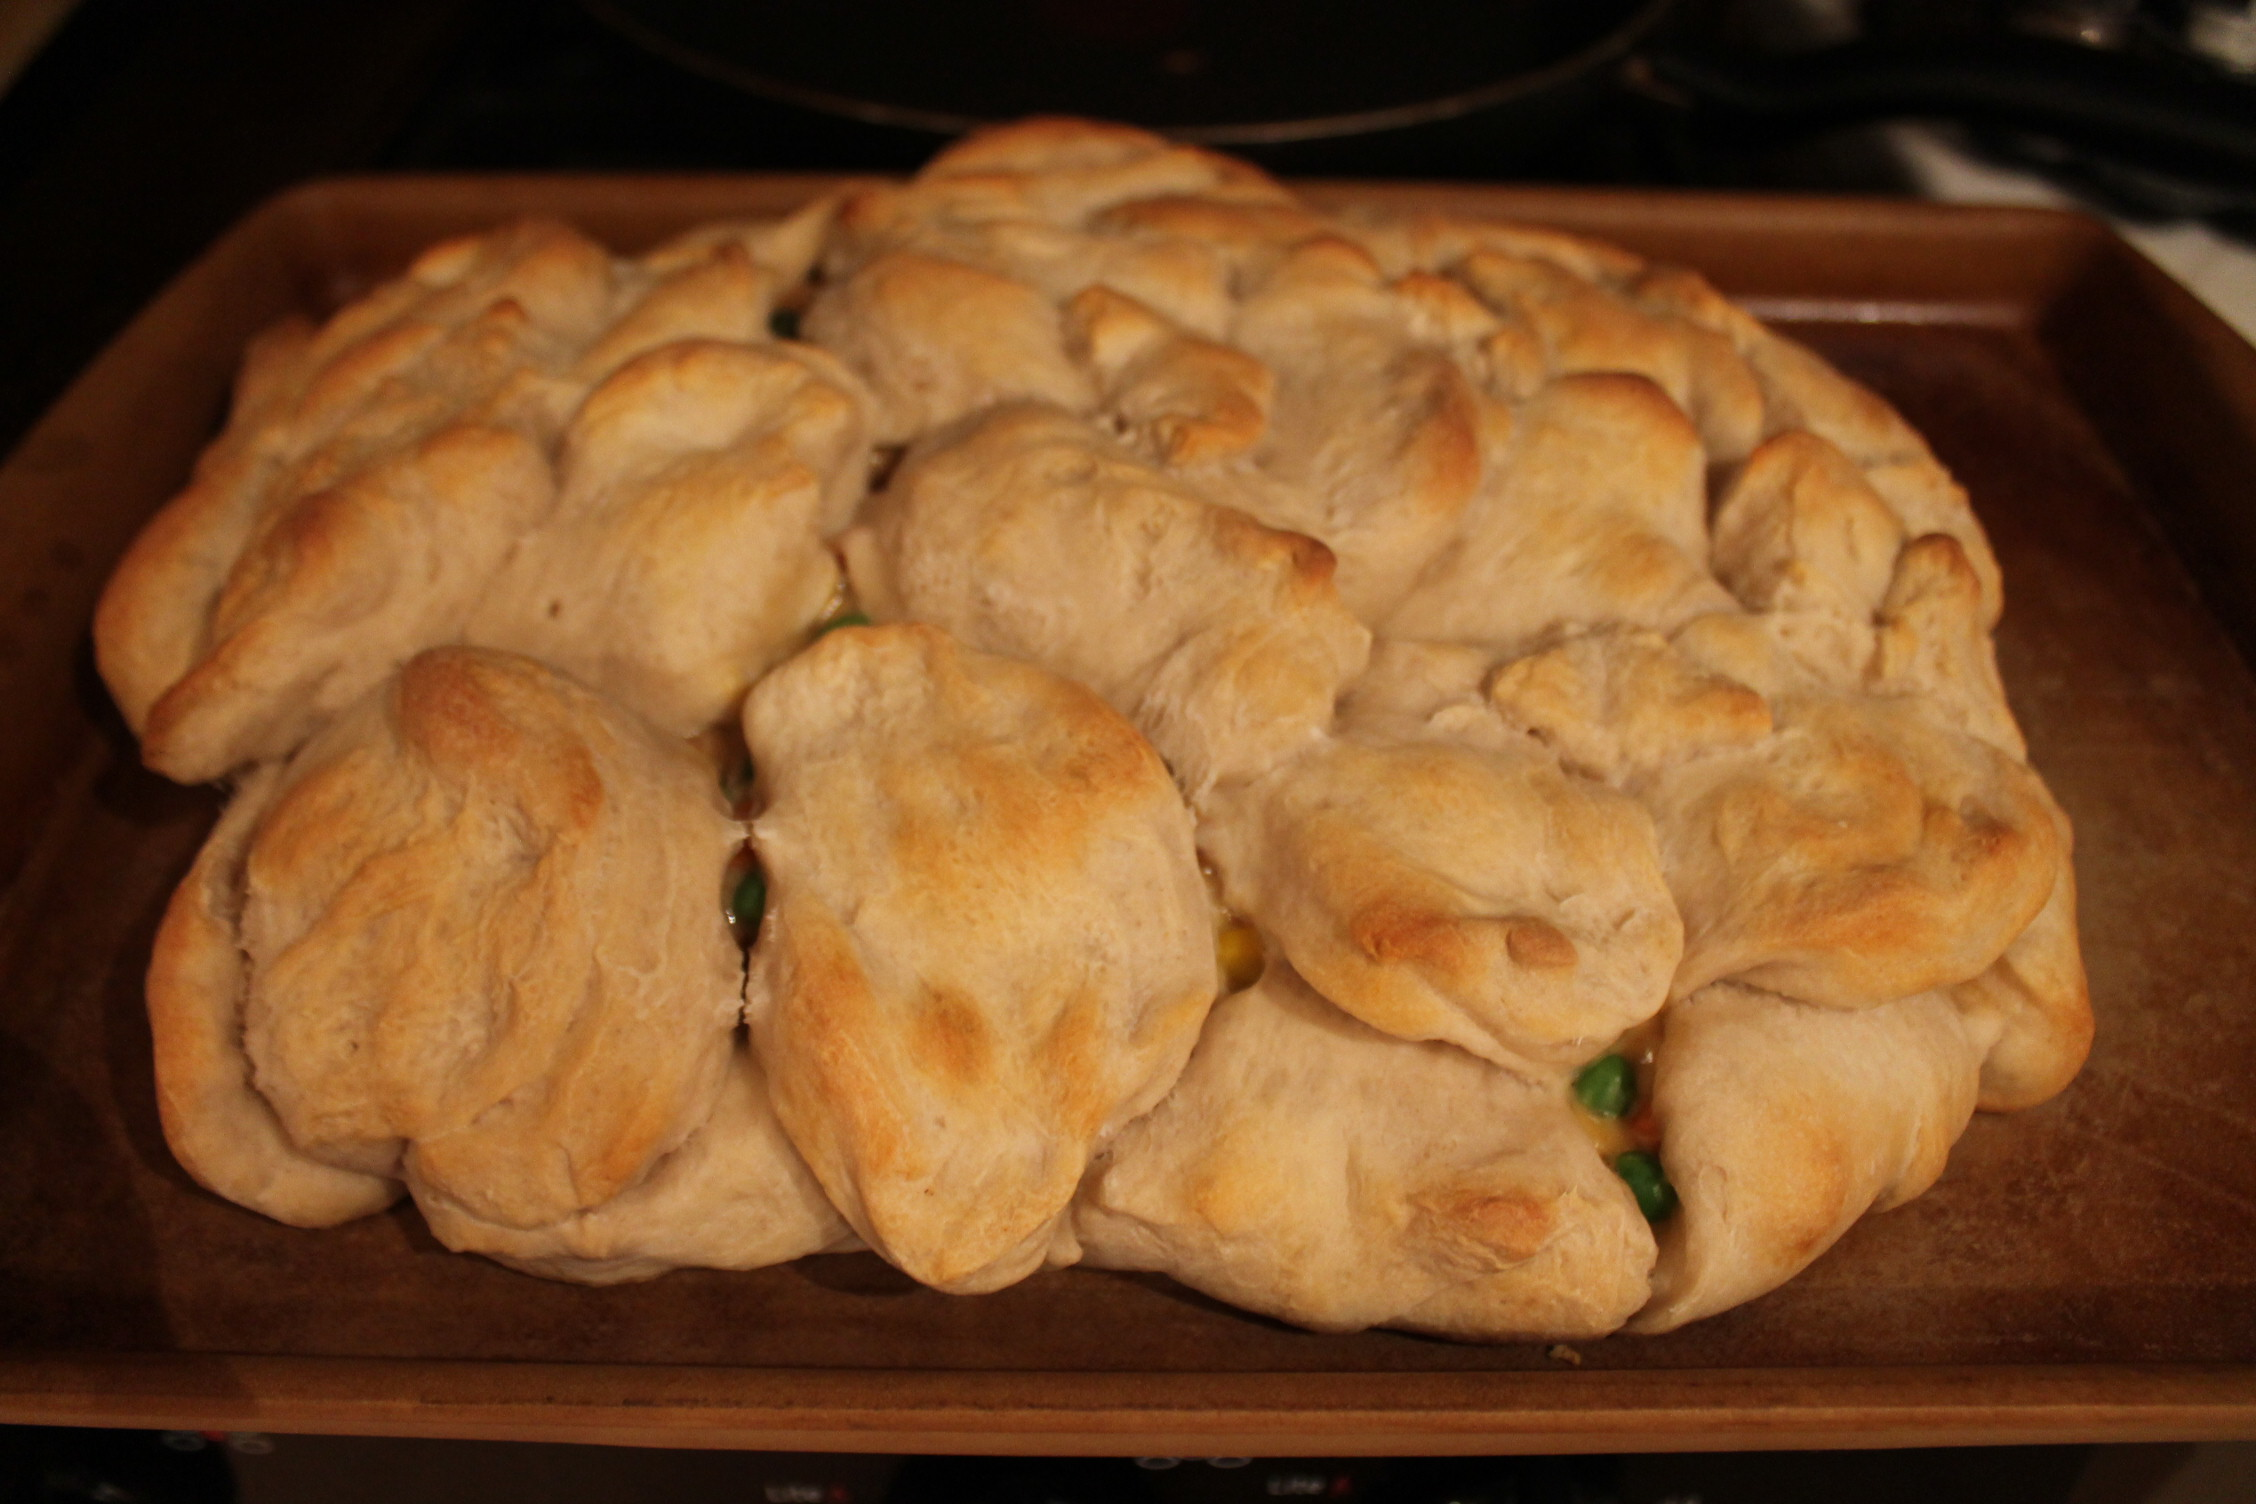 ... of a pie crust you will use delicious Pillsbury Buttermilk Biscuits